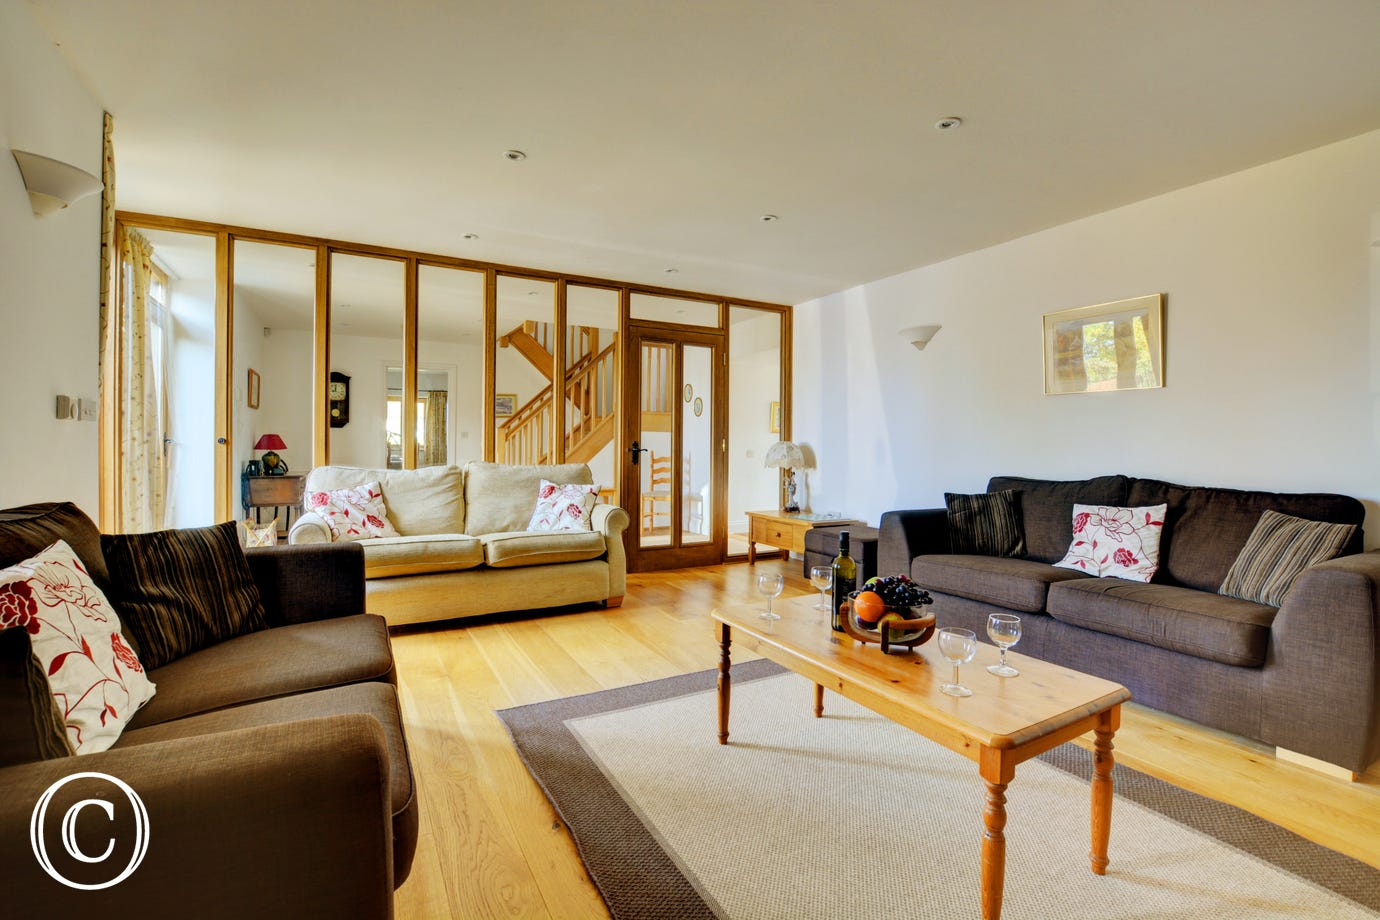 Sitting Room, spacious with comfortable seating